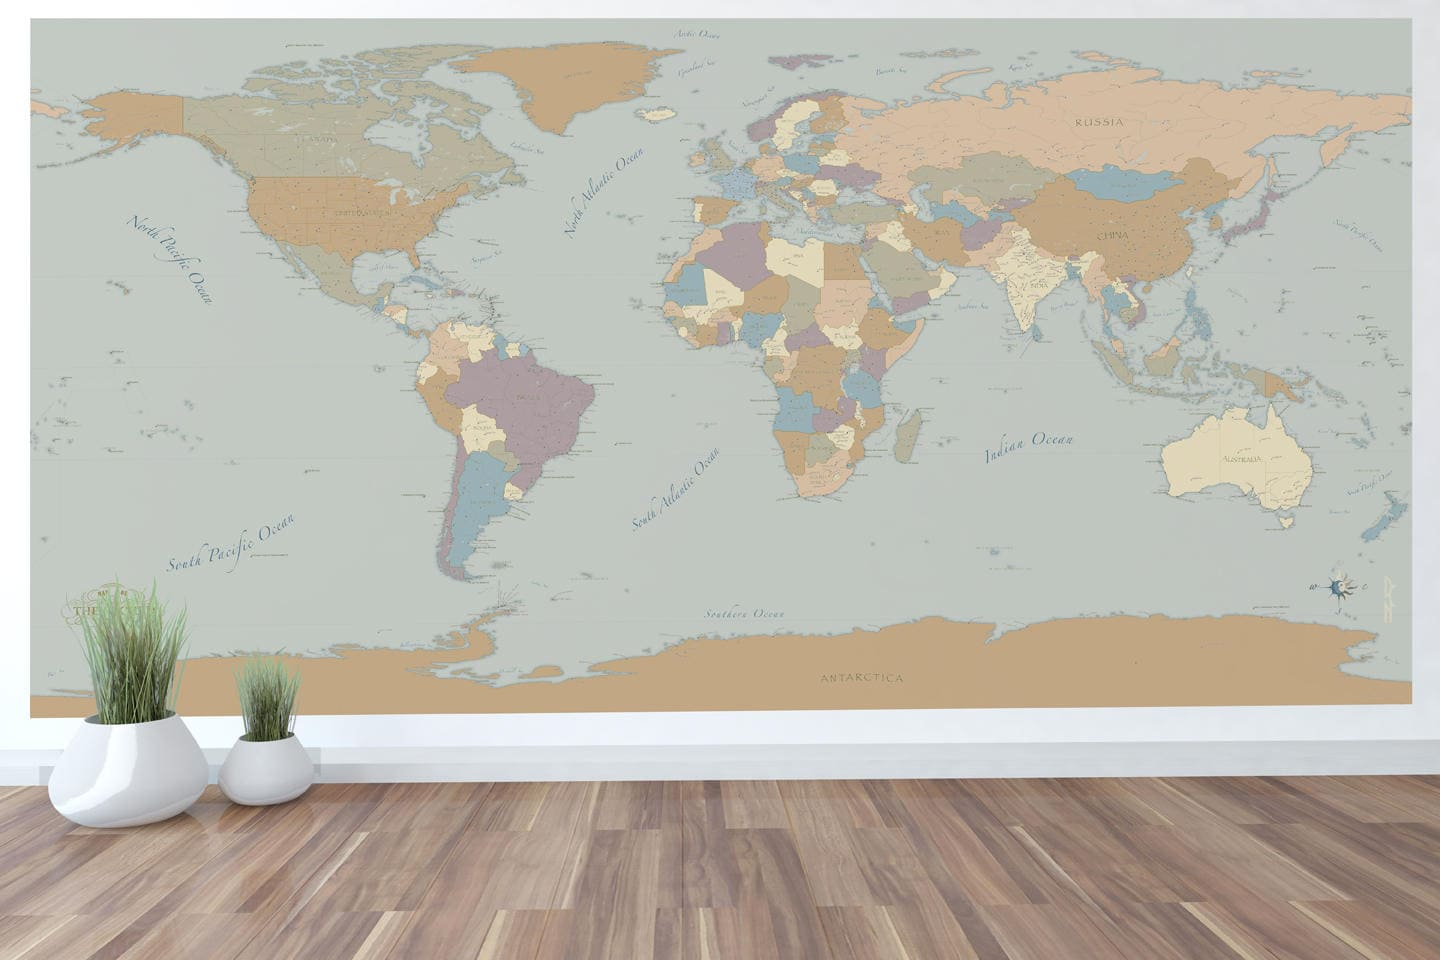 Giant world map mural wall art world map decal 59x30 or 96x48 with giant world map mural wall art world map decal 59x30 or 96x48 with beautiful colors and cities gumiabroncs Images